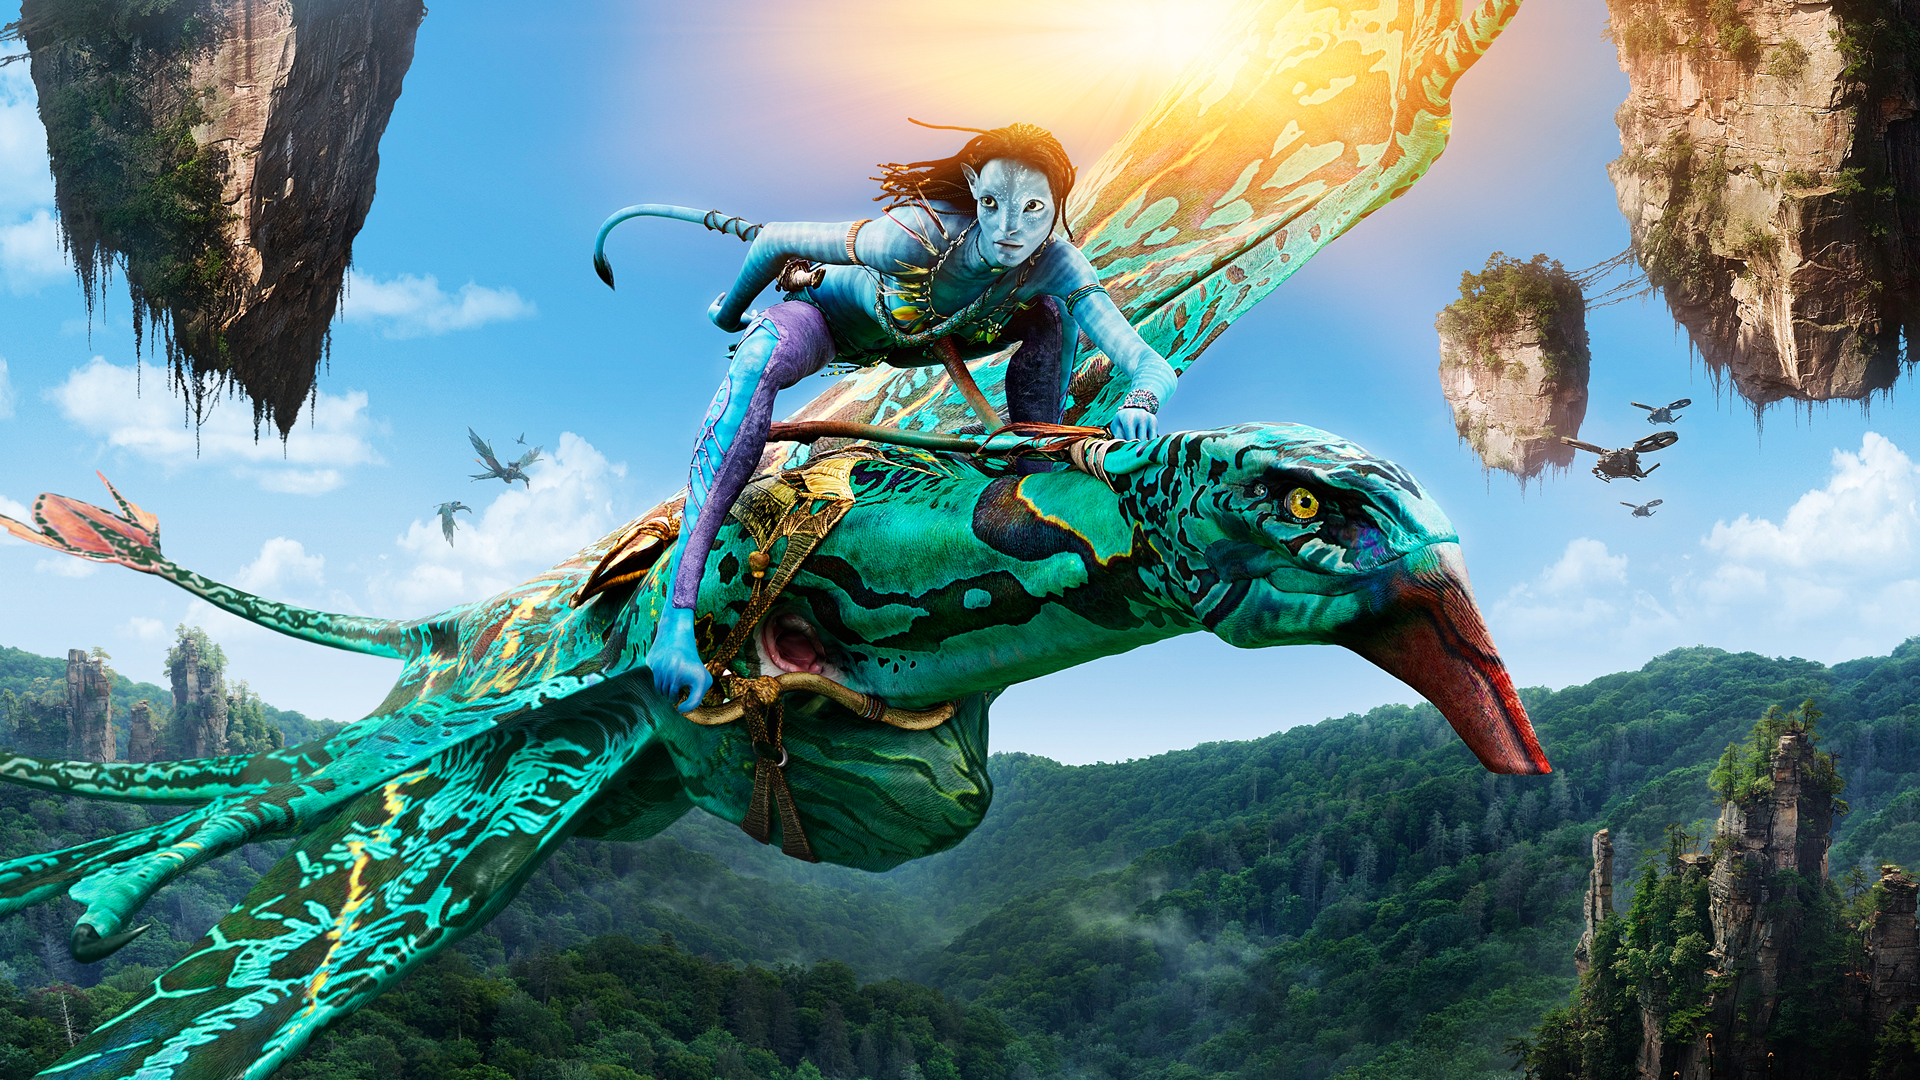 world toys helicopter with Avatar Wallpapers Hd For Pc on Lego Police Helicopter Set 7741 Instructions likewise 183180 further Marvel Super Hero Mashers also Pteranodon as well Review Hasbro Jurassic World Hybrid R age Indominus Rex.